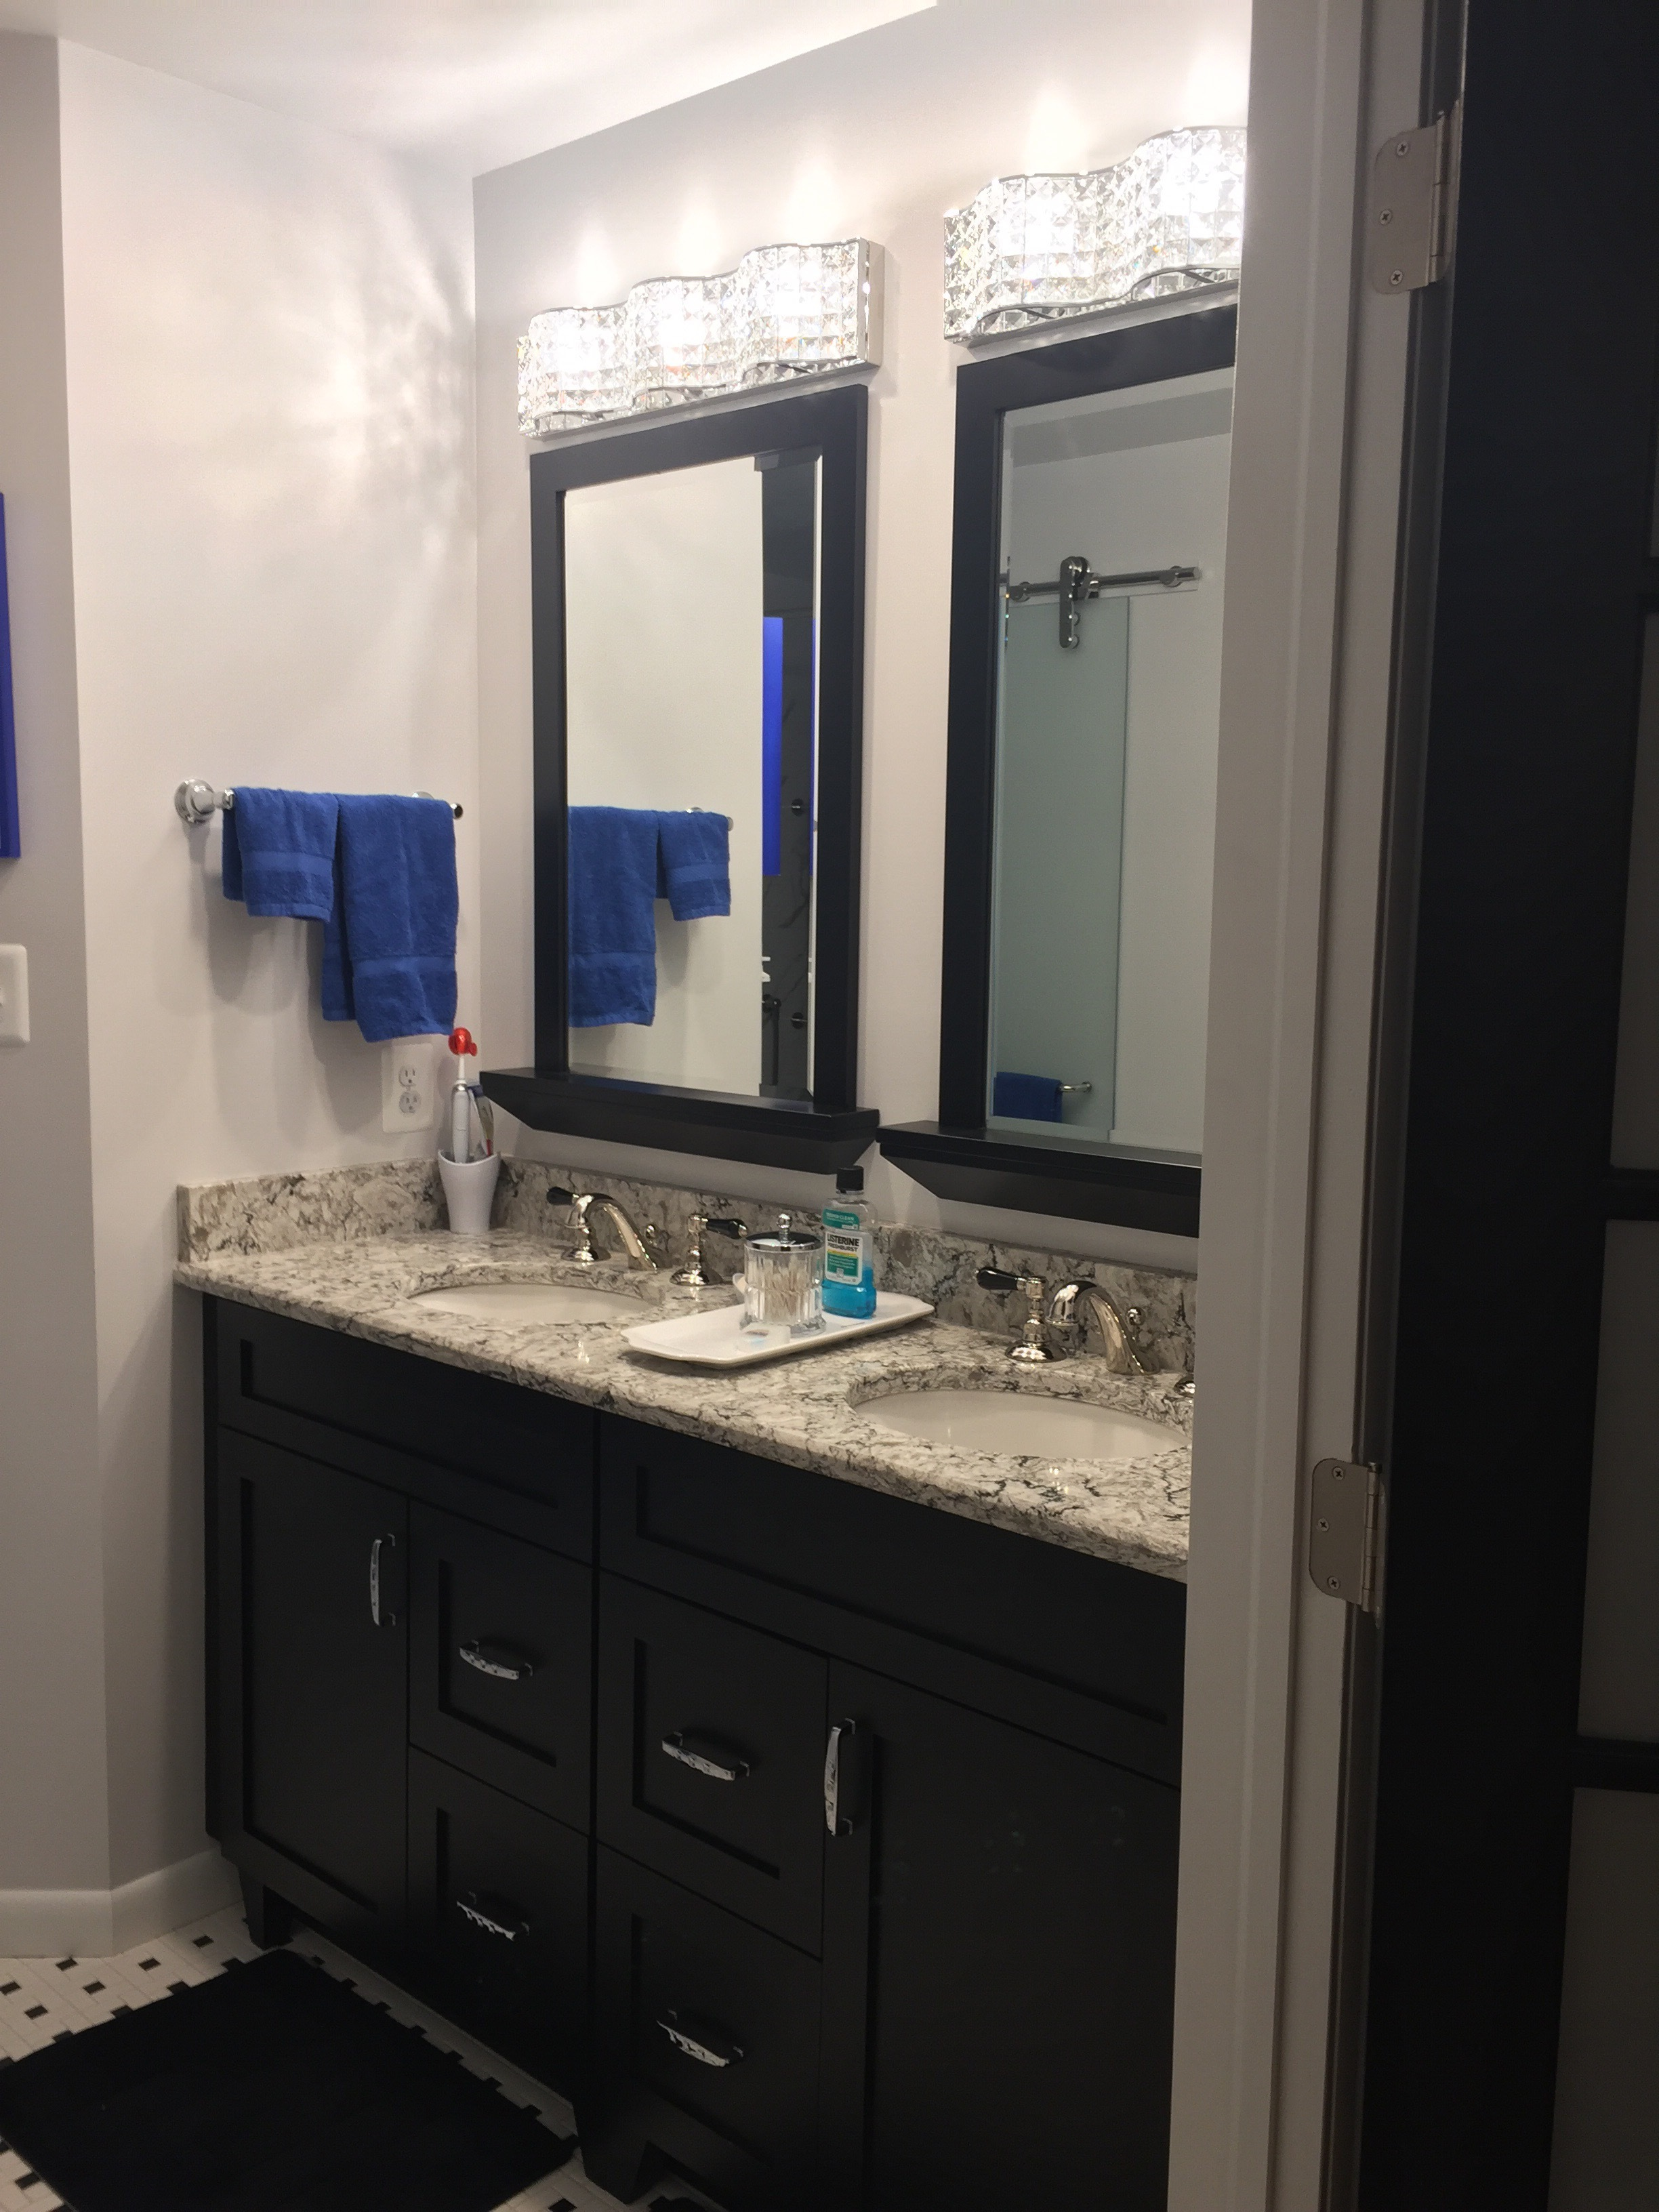 After, the new master bathroom vanity, with water closet to the left.